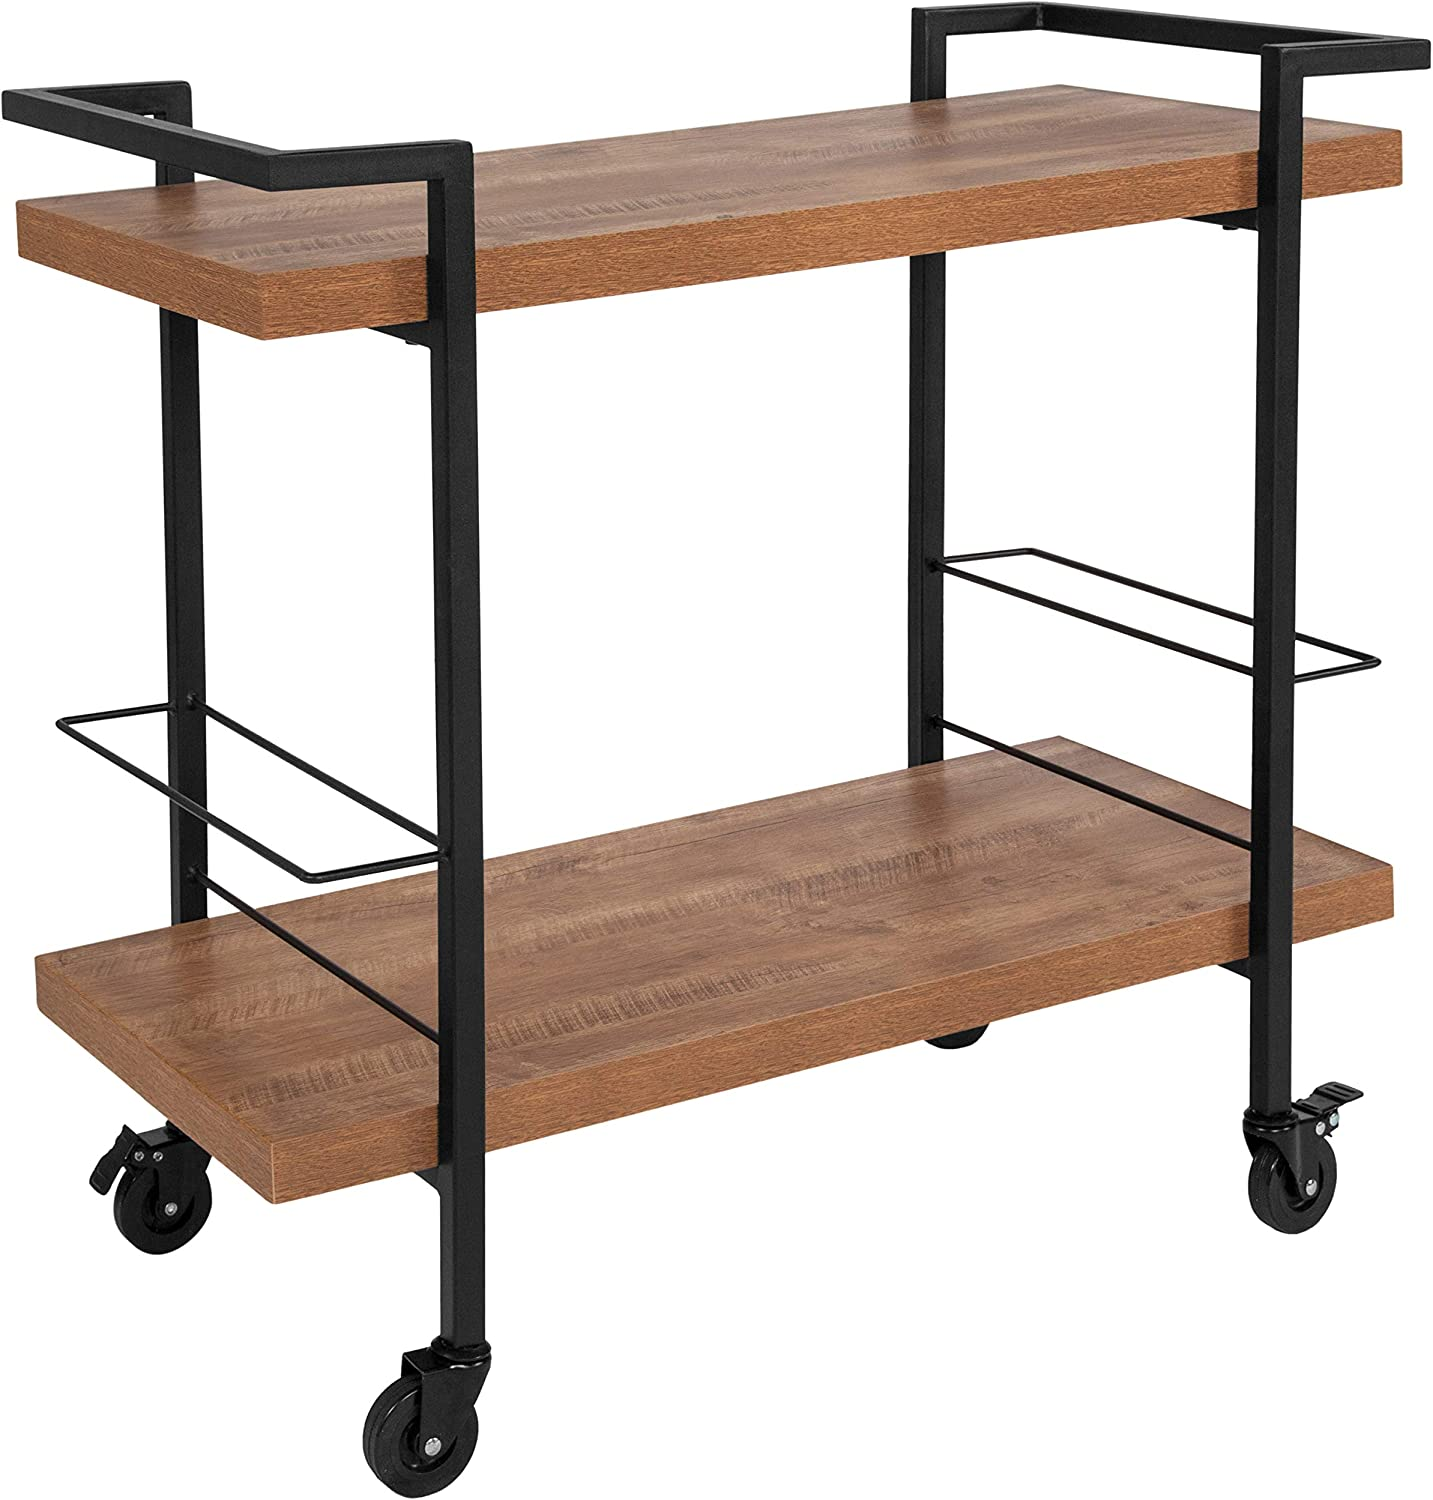 Taylor Logan Rustic Wood Grain Kitchen Bar Cart with 2 Storage Compartment Racks